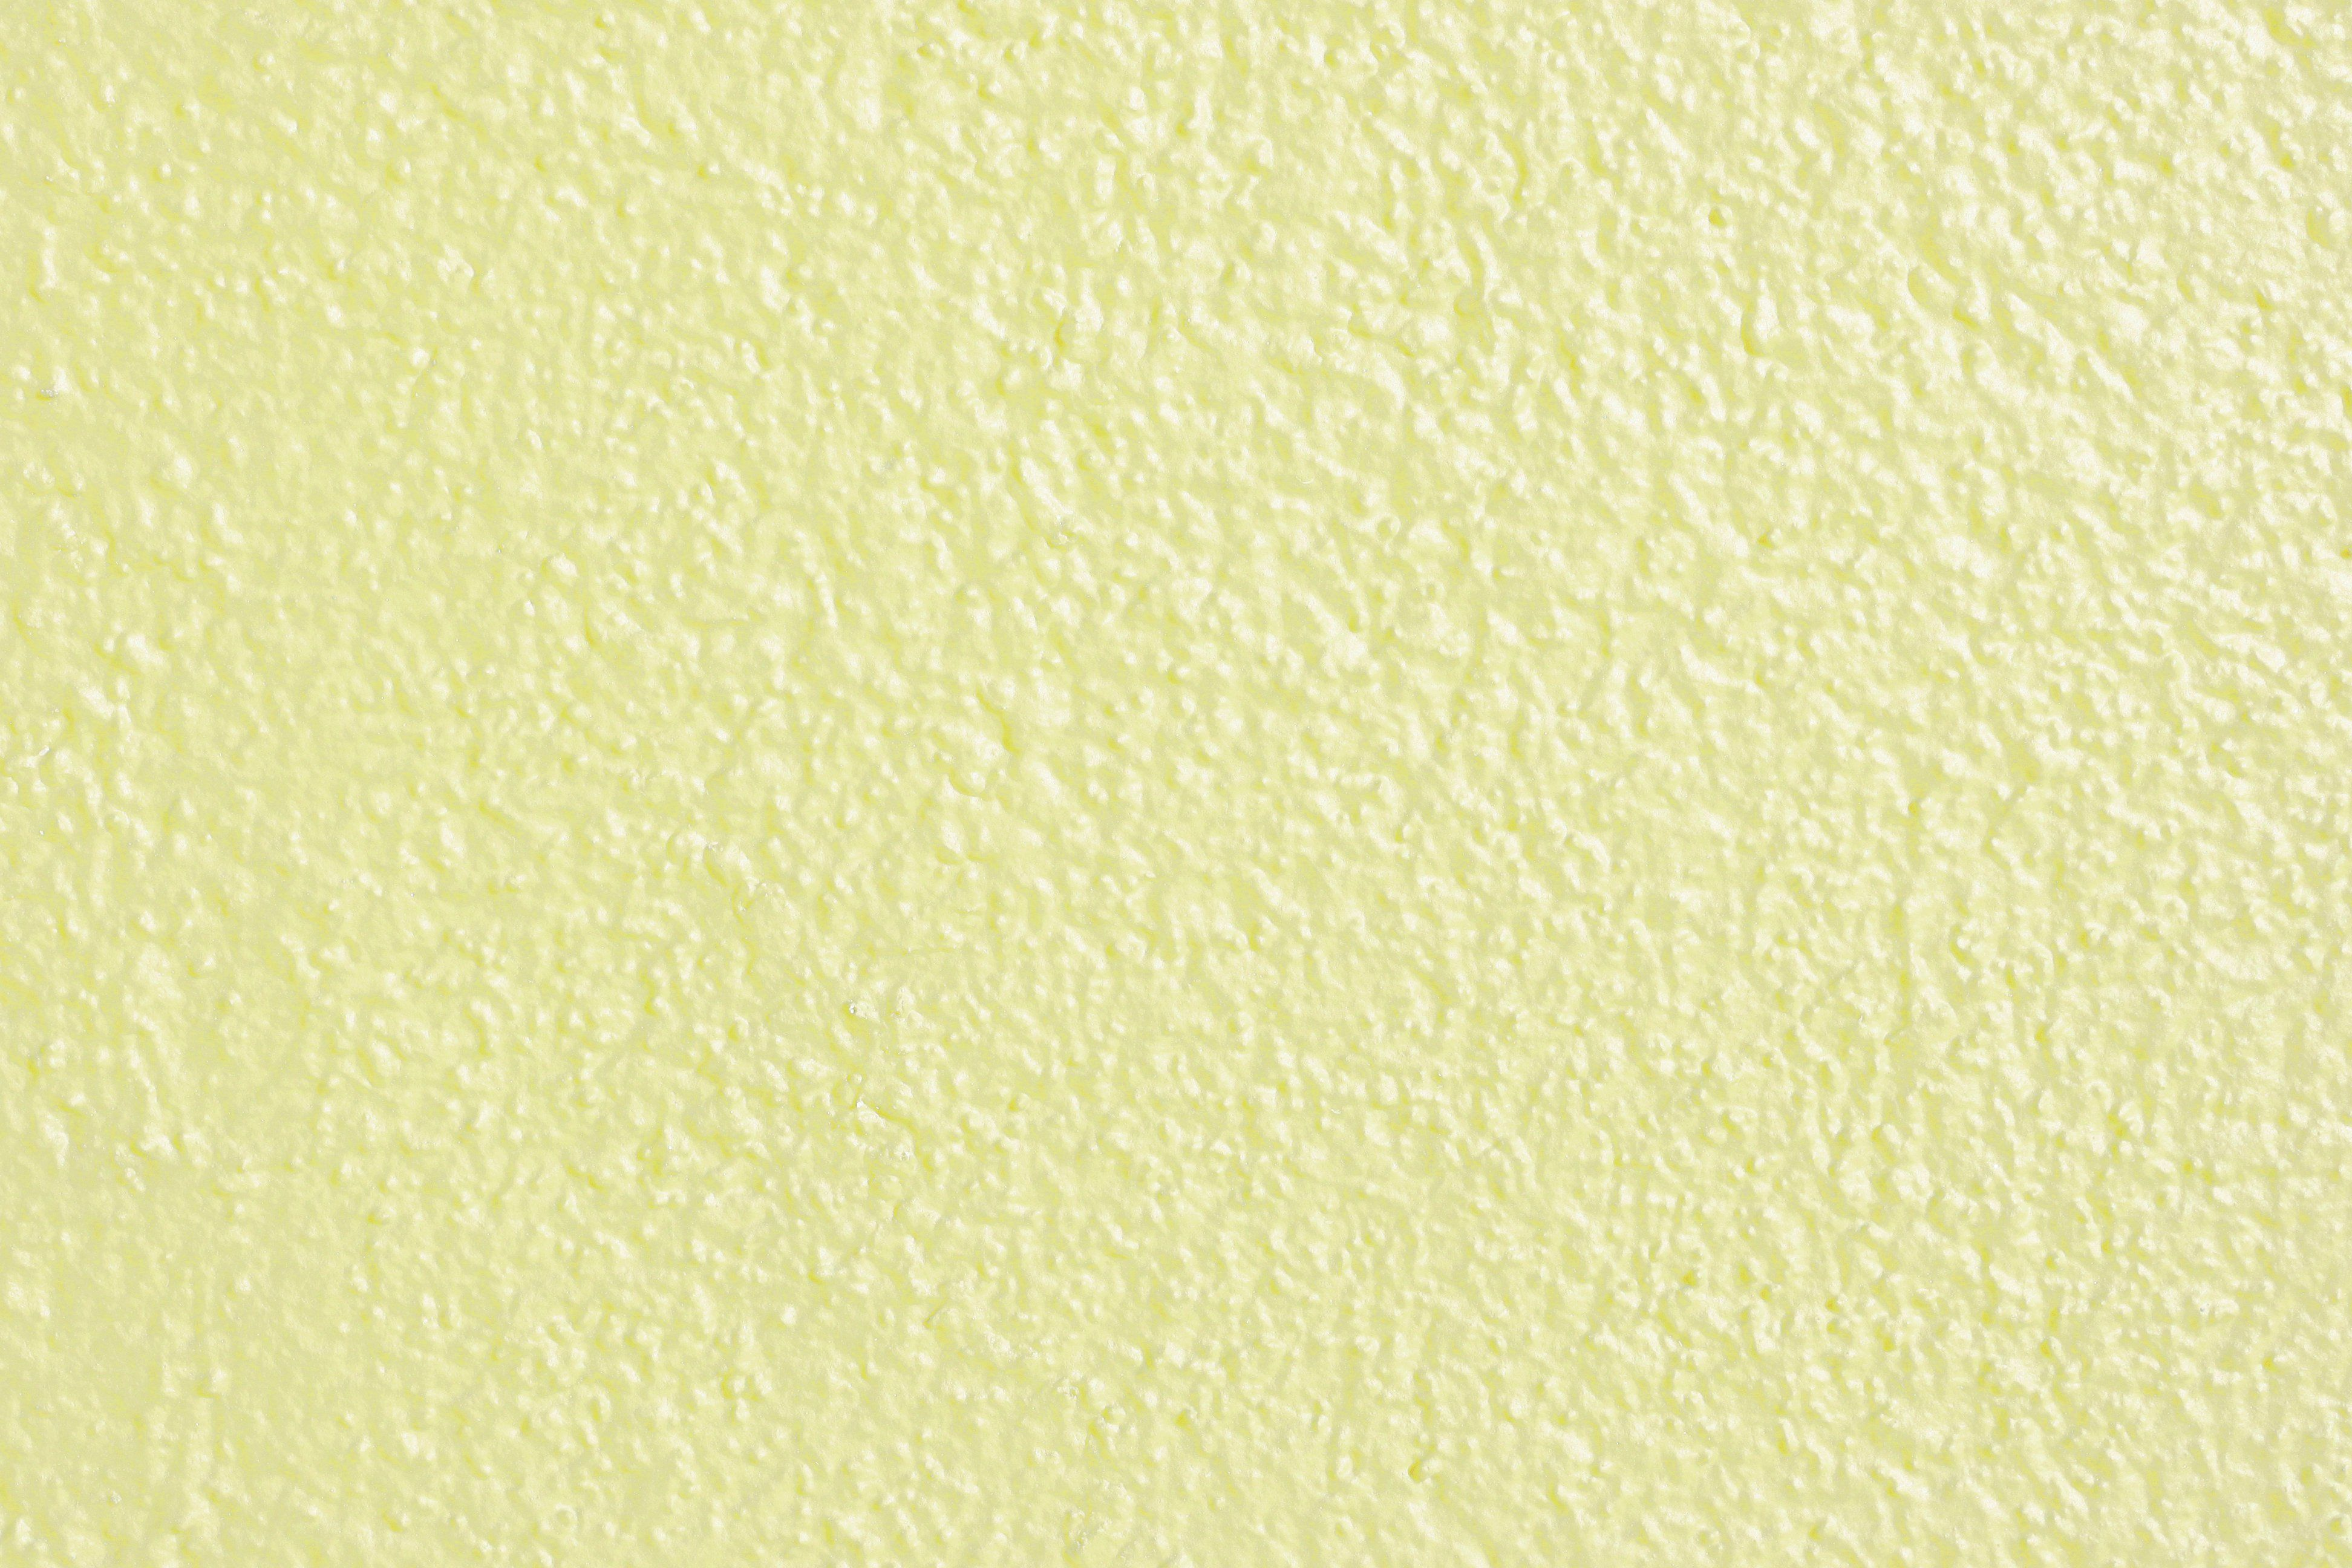 Pale Yellow Painted Wall Texture | cOOrdinate | Pinterest | Pale ...